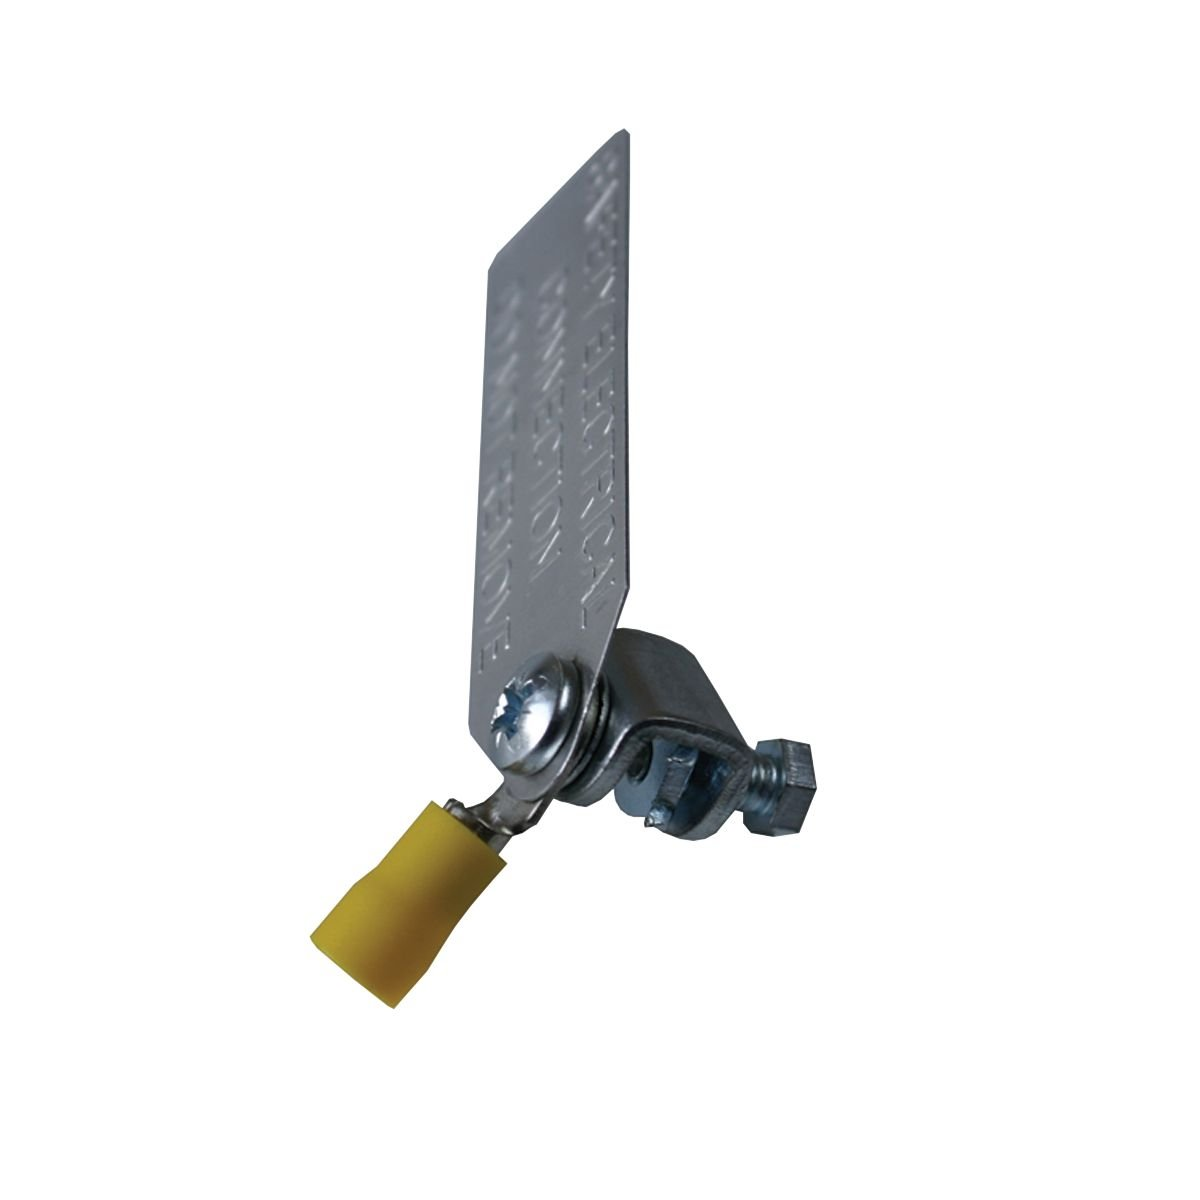 Earth Clamp Clamps Strap Electrical Cable Wire Bonding Radiator Gas Water Pipe